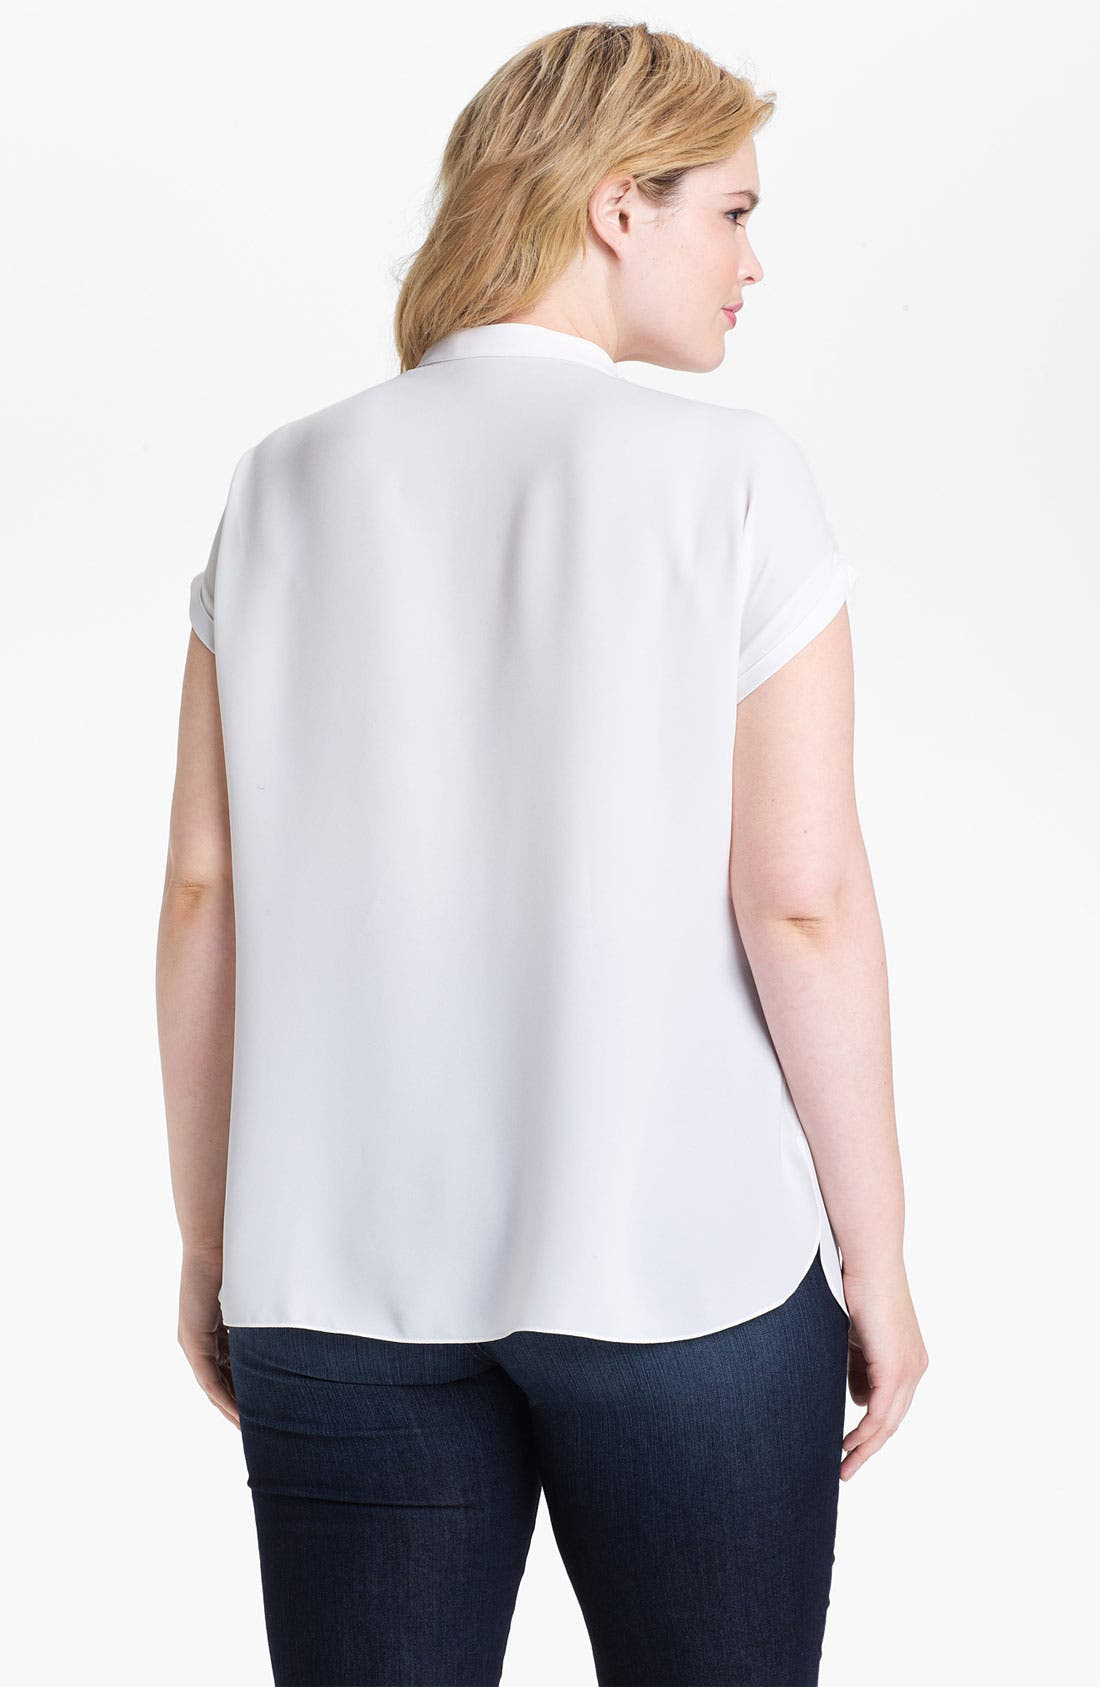 Alternate Image 2  - Tahari Woman 'Valeria' Contrast Trim Blouse (Plus)